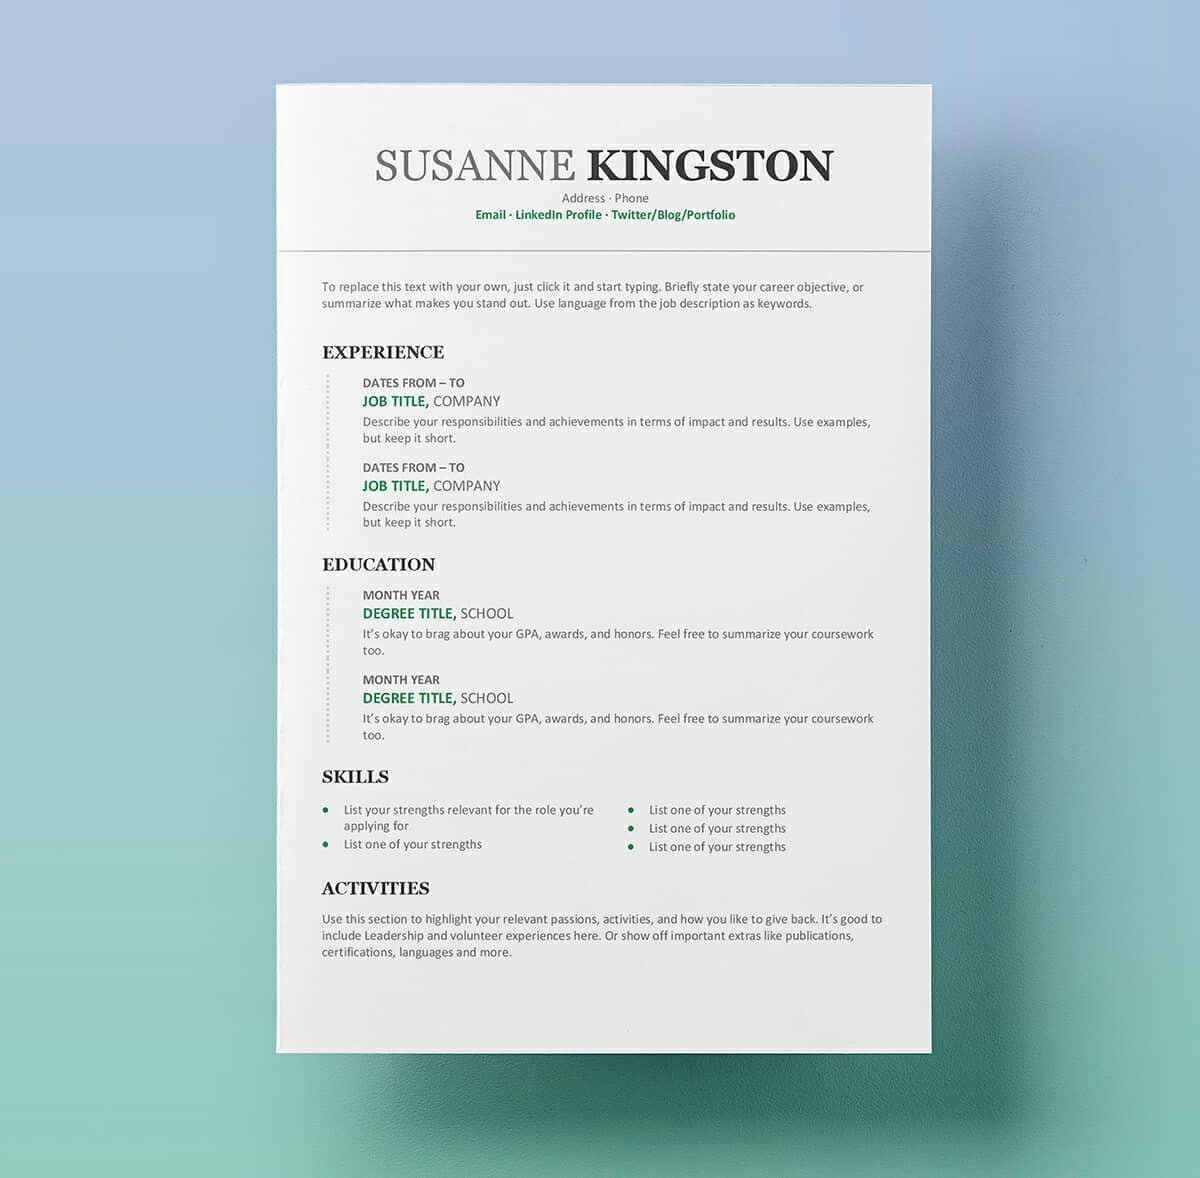 Downloadable Resume Templates Word Resume Templates for Word Free 15 Examples for Download